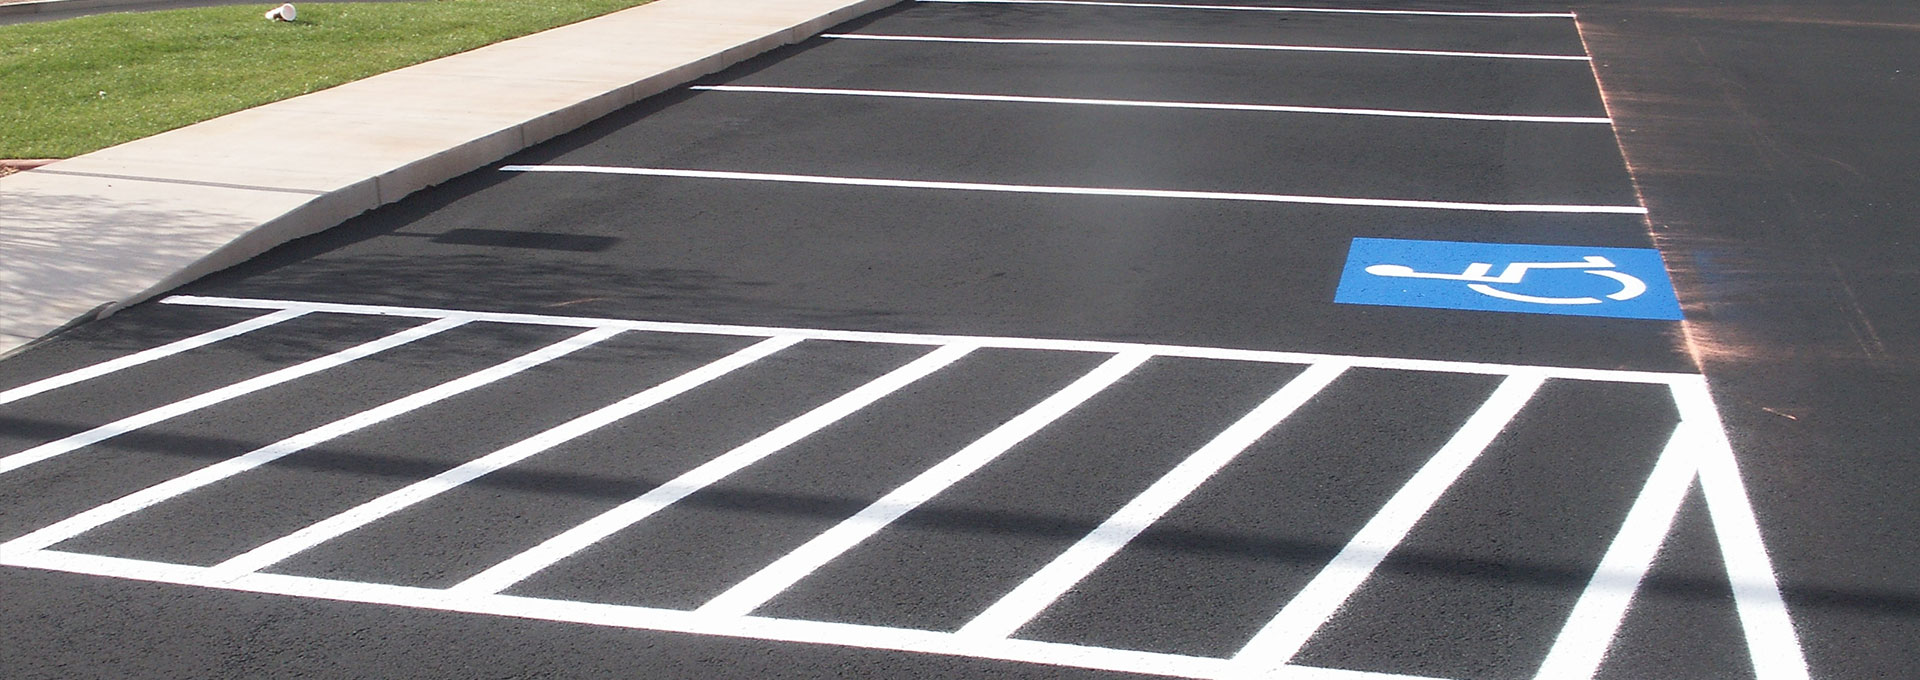 pavement-striping-preservation-s4